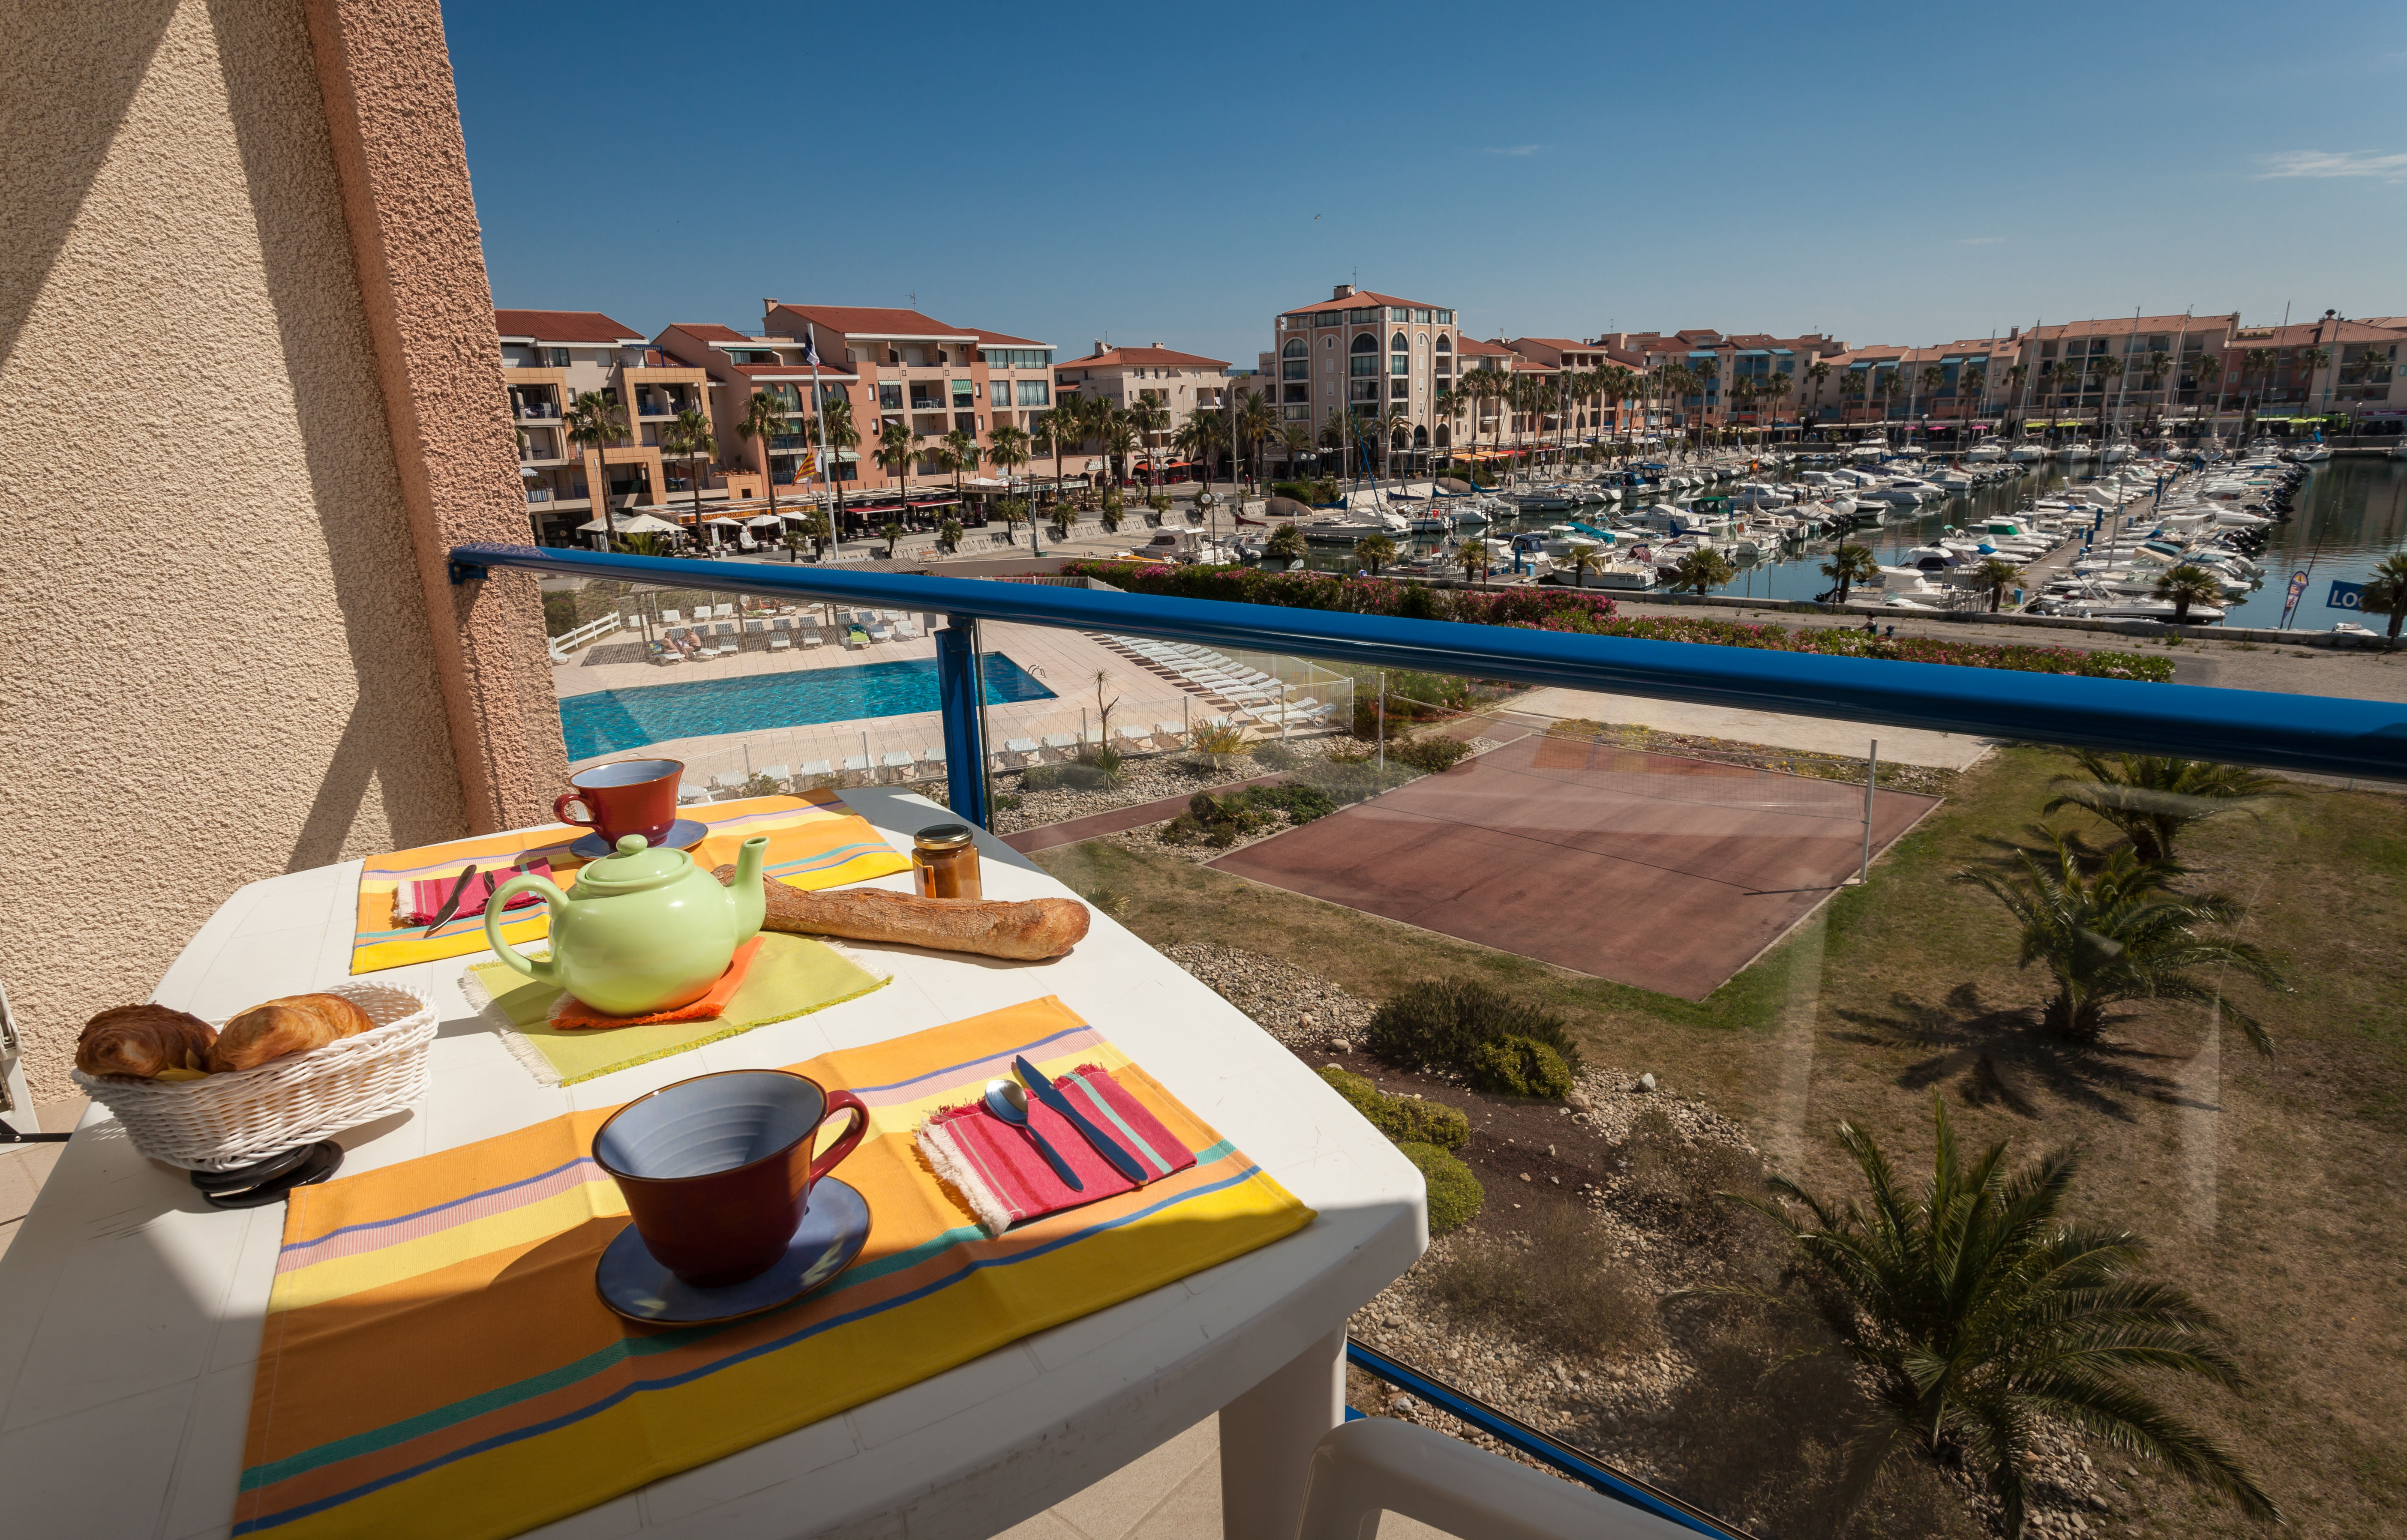 Appart h tel argel s sur mer r sidence port argel s mer for Appart hotel park and suites